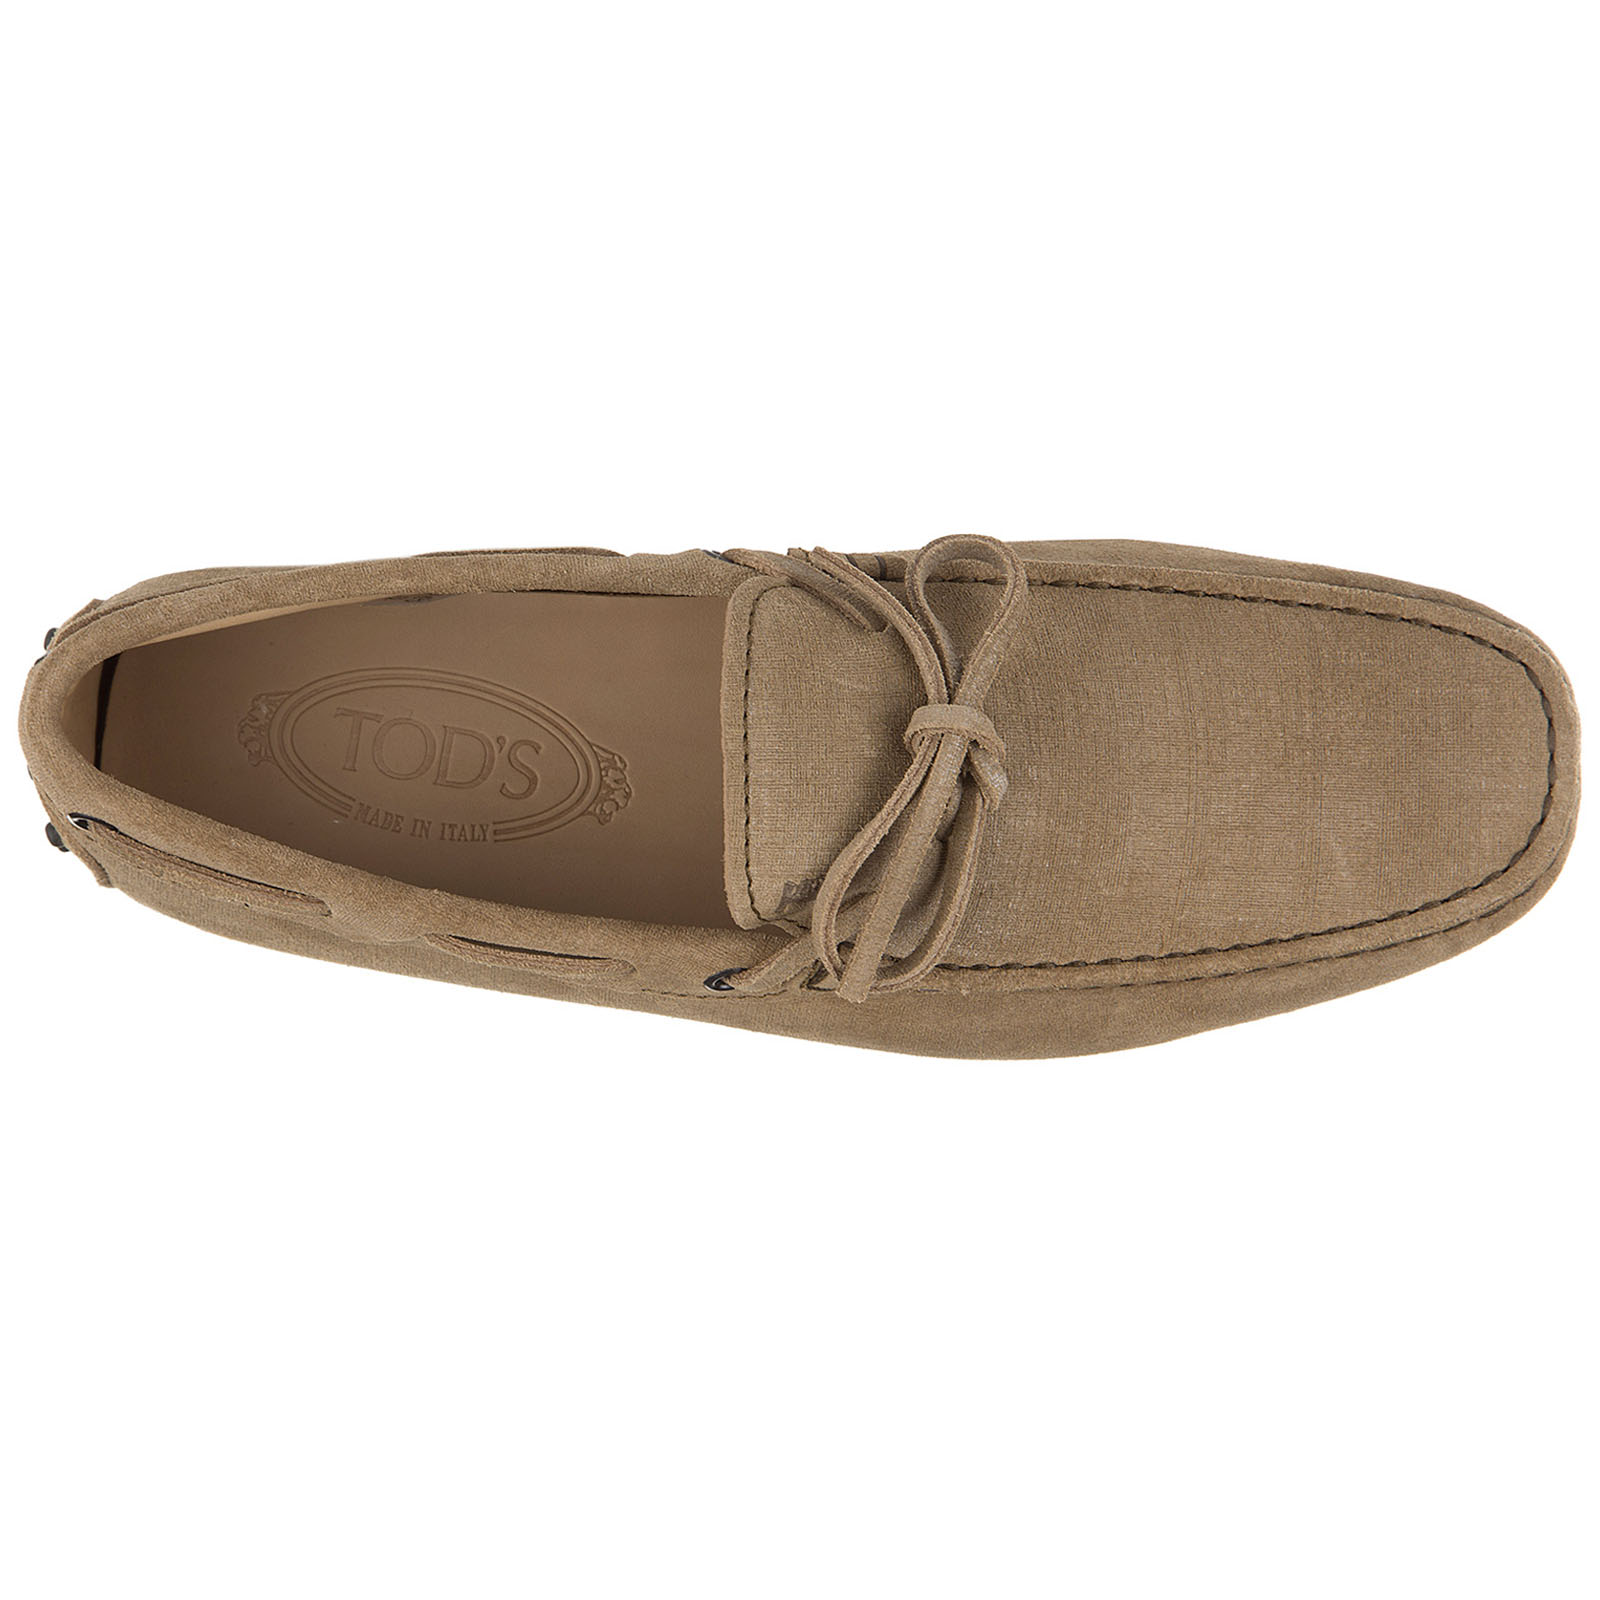 Herren leder mokassins slipper  laccetto gommino 122